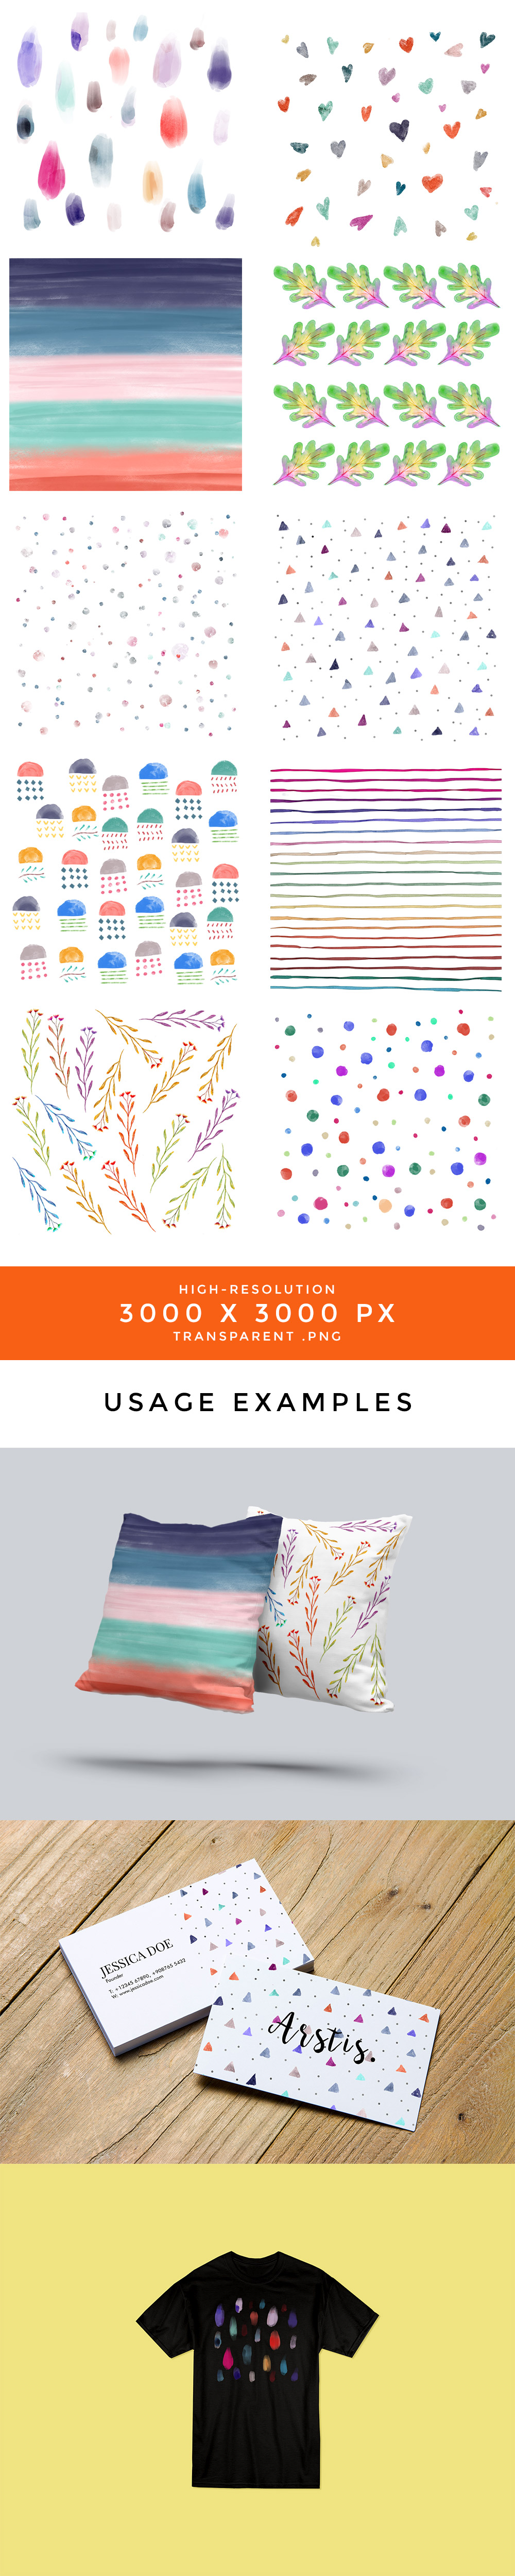 Hand Drawn Watercolor Patterns